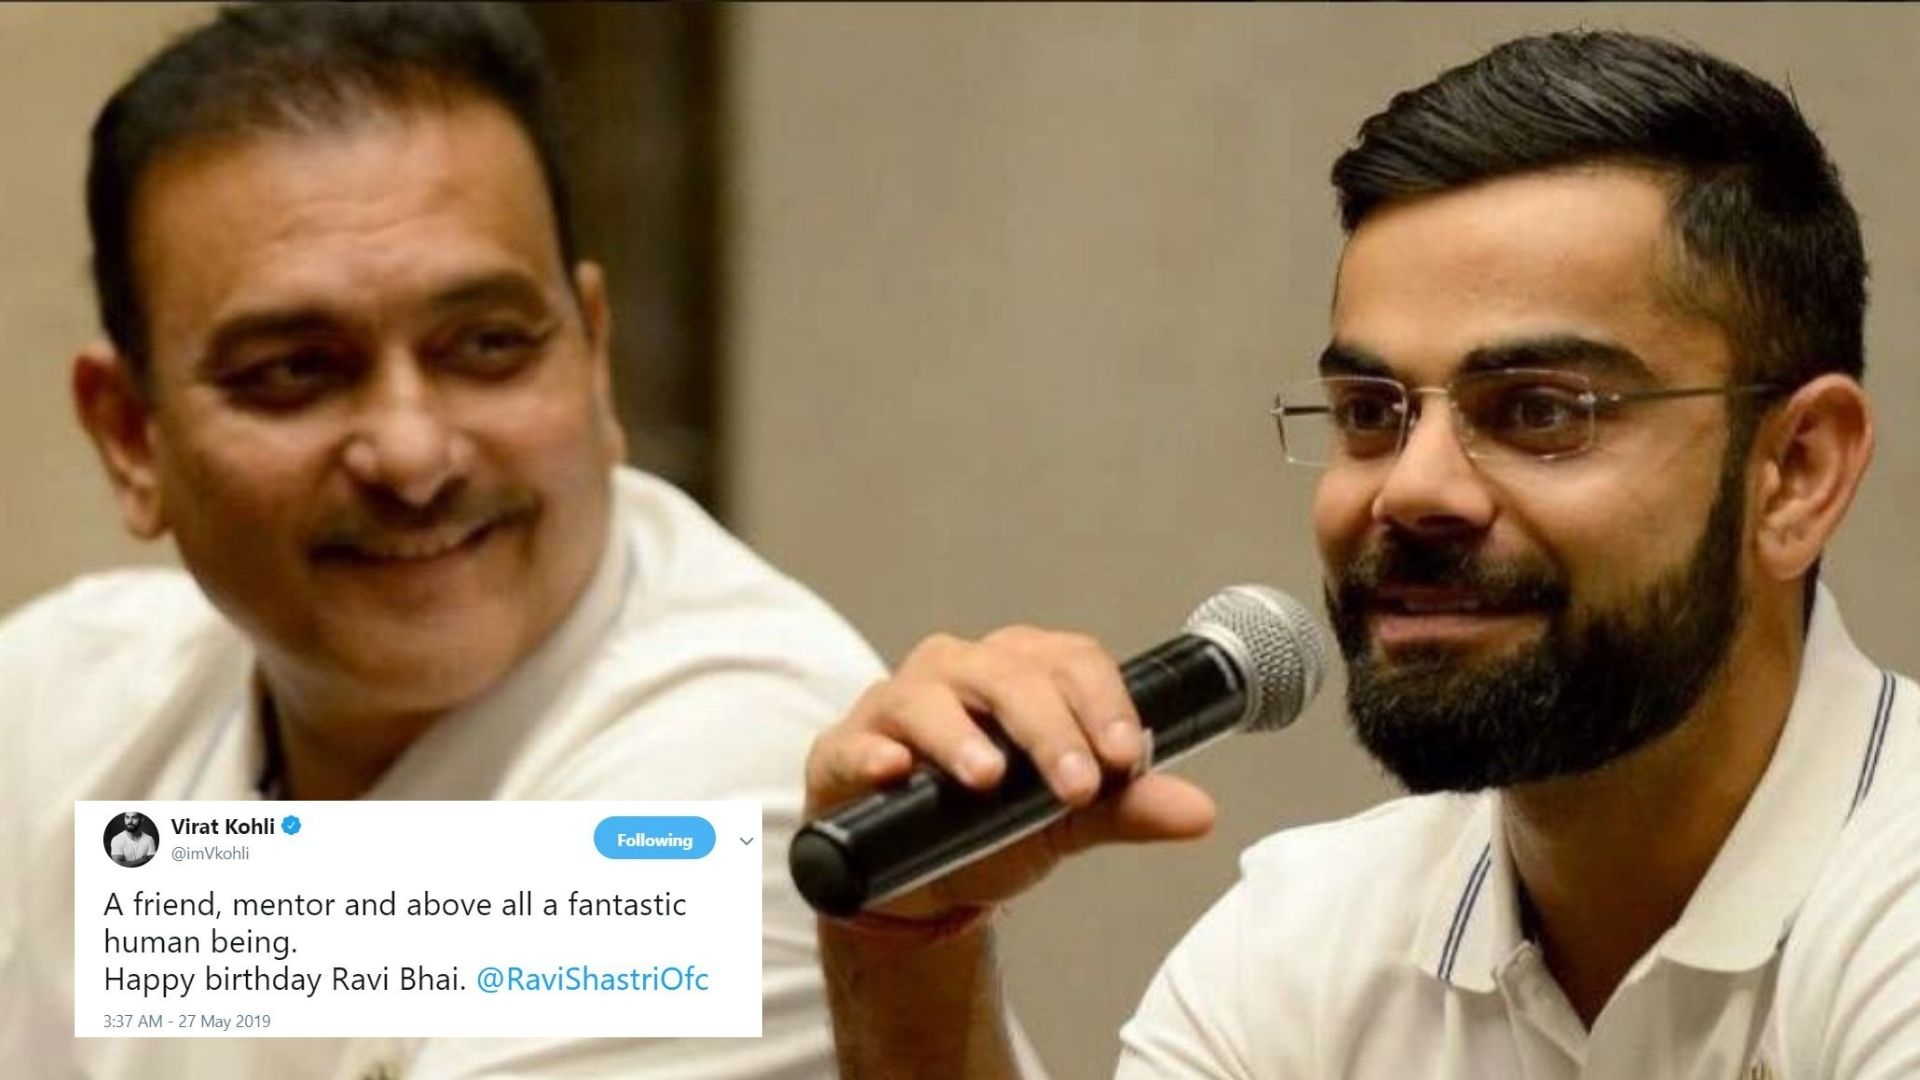 Captain Kohli Leads the Line for Coach Shastri's Birthday Wishes